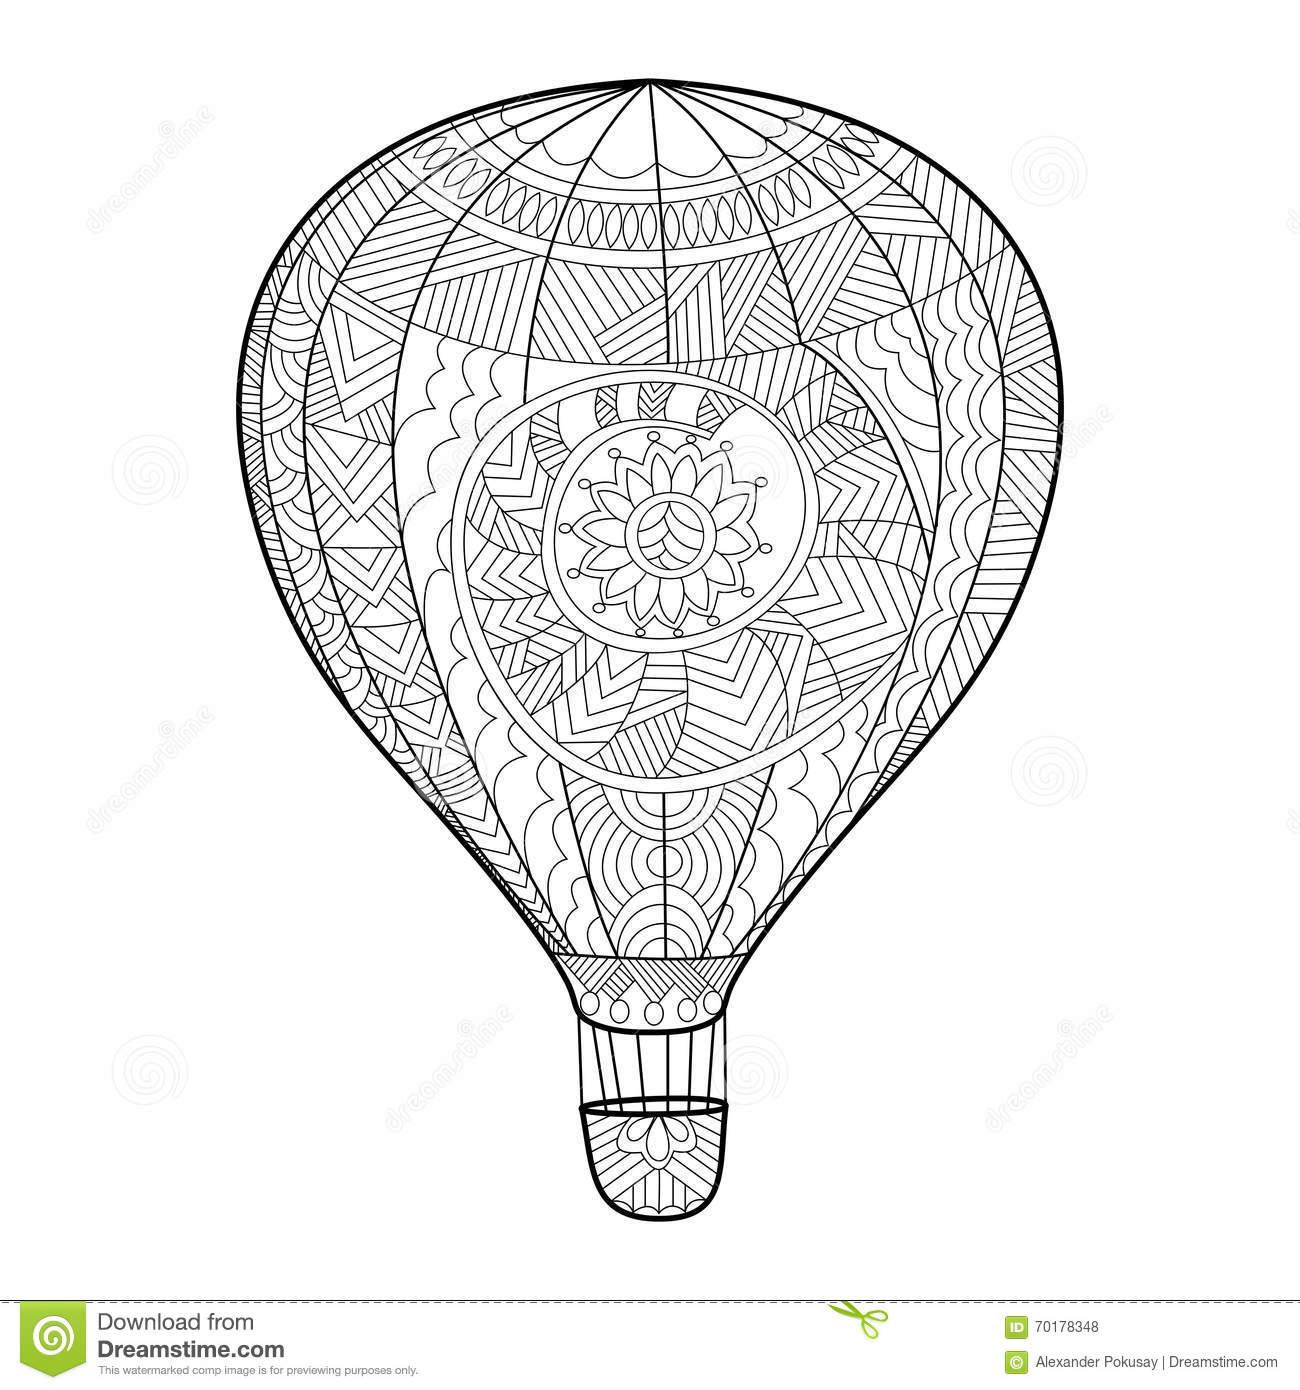 Hot air balloon and adult supervision